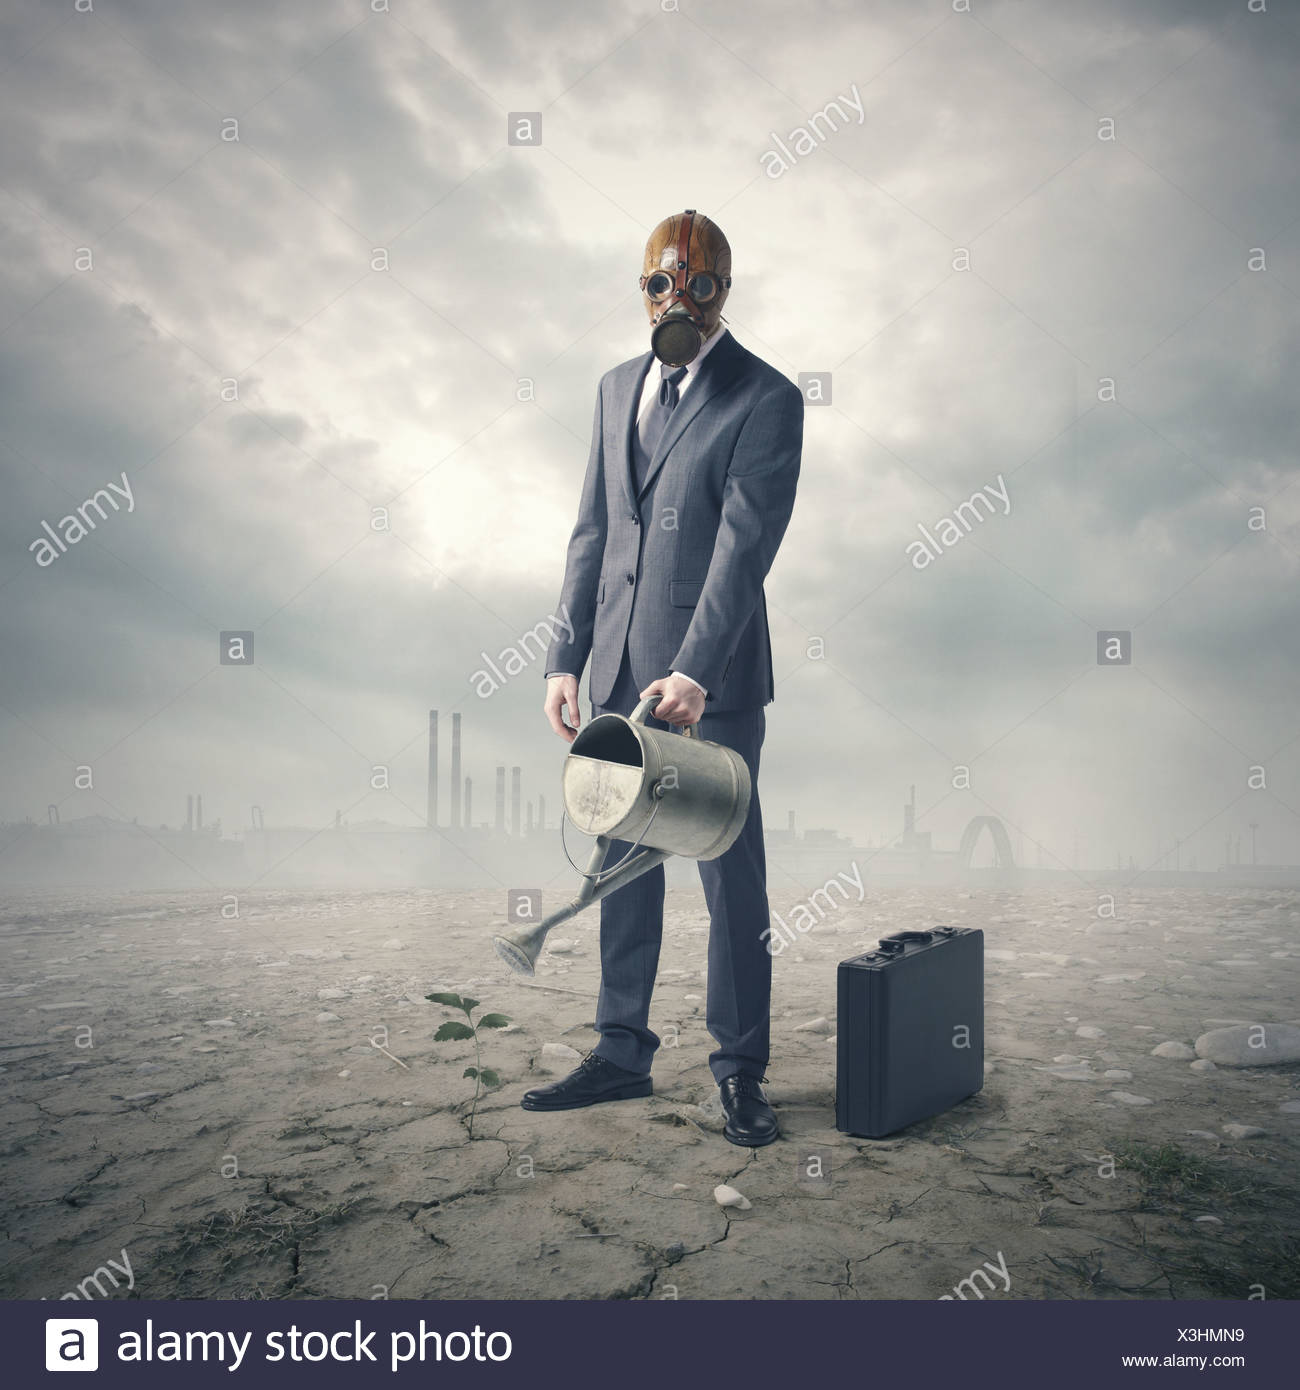 environment concept: businessman watering a lone plant in a barren desert. - Stock Image